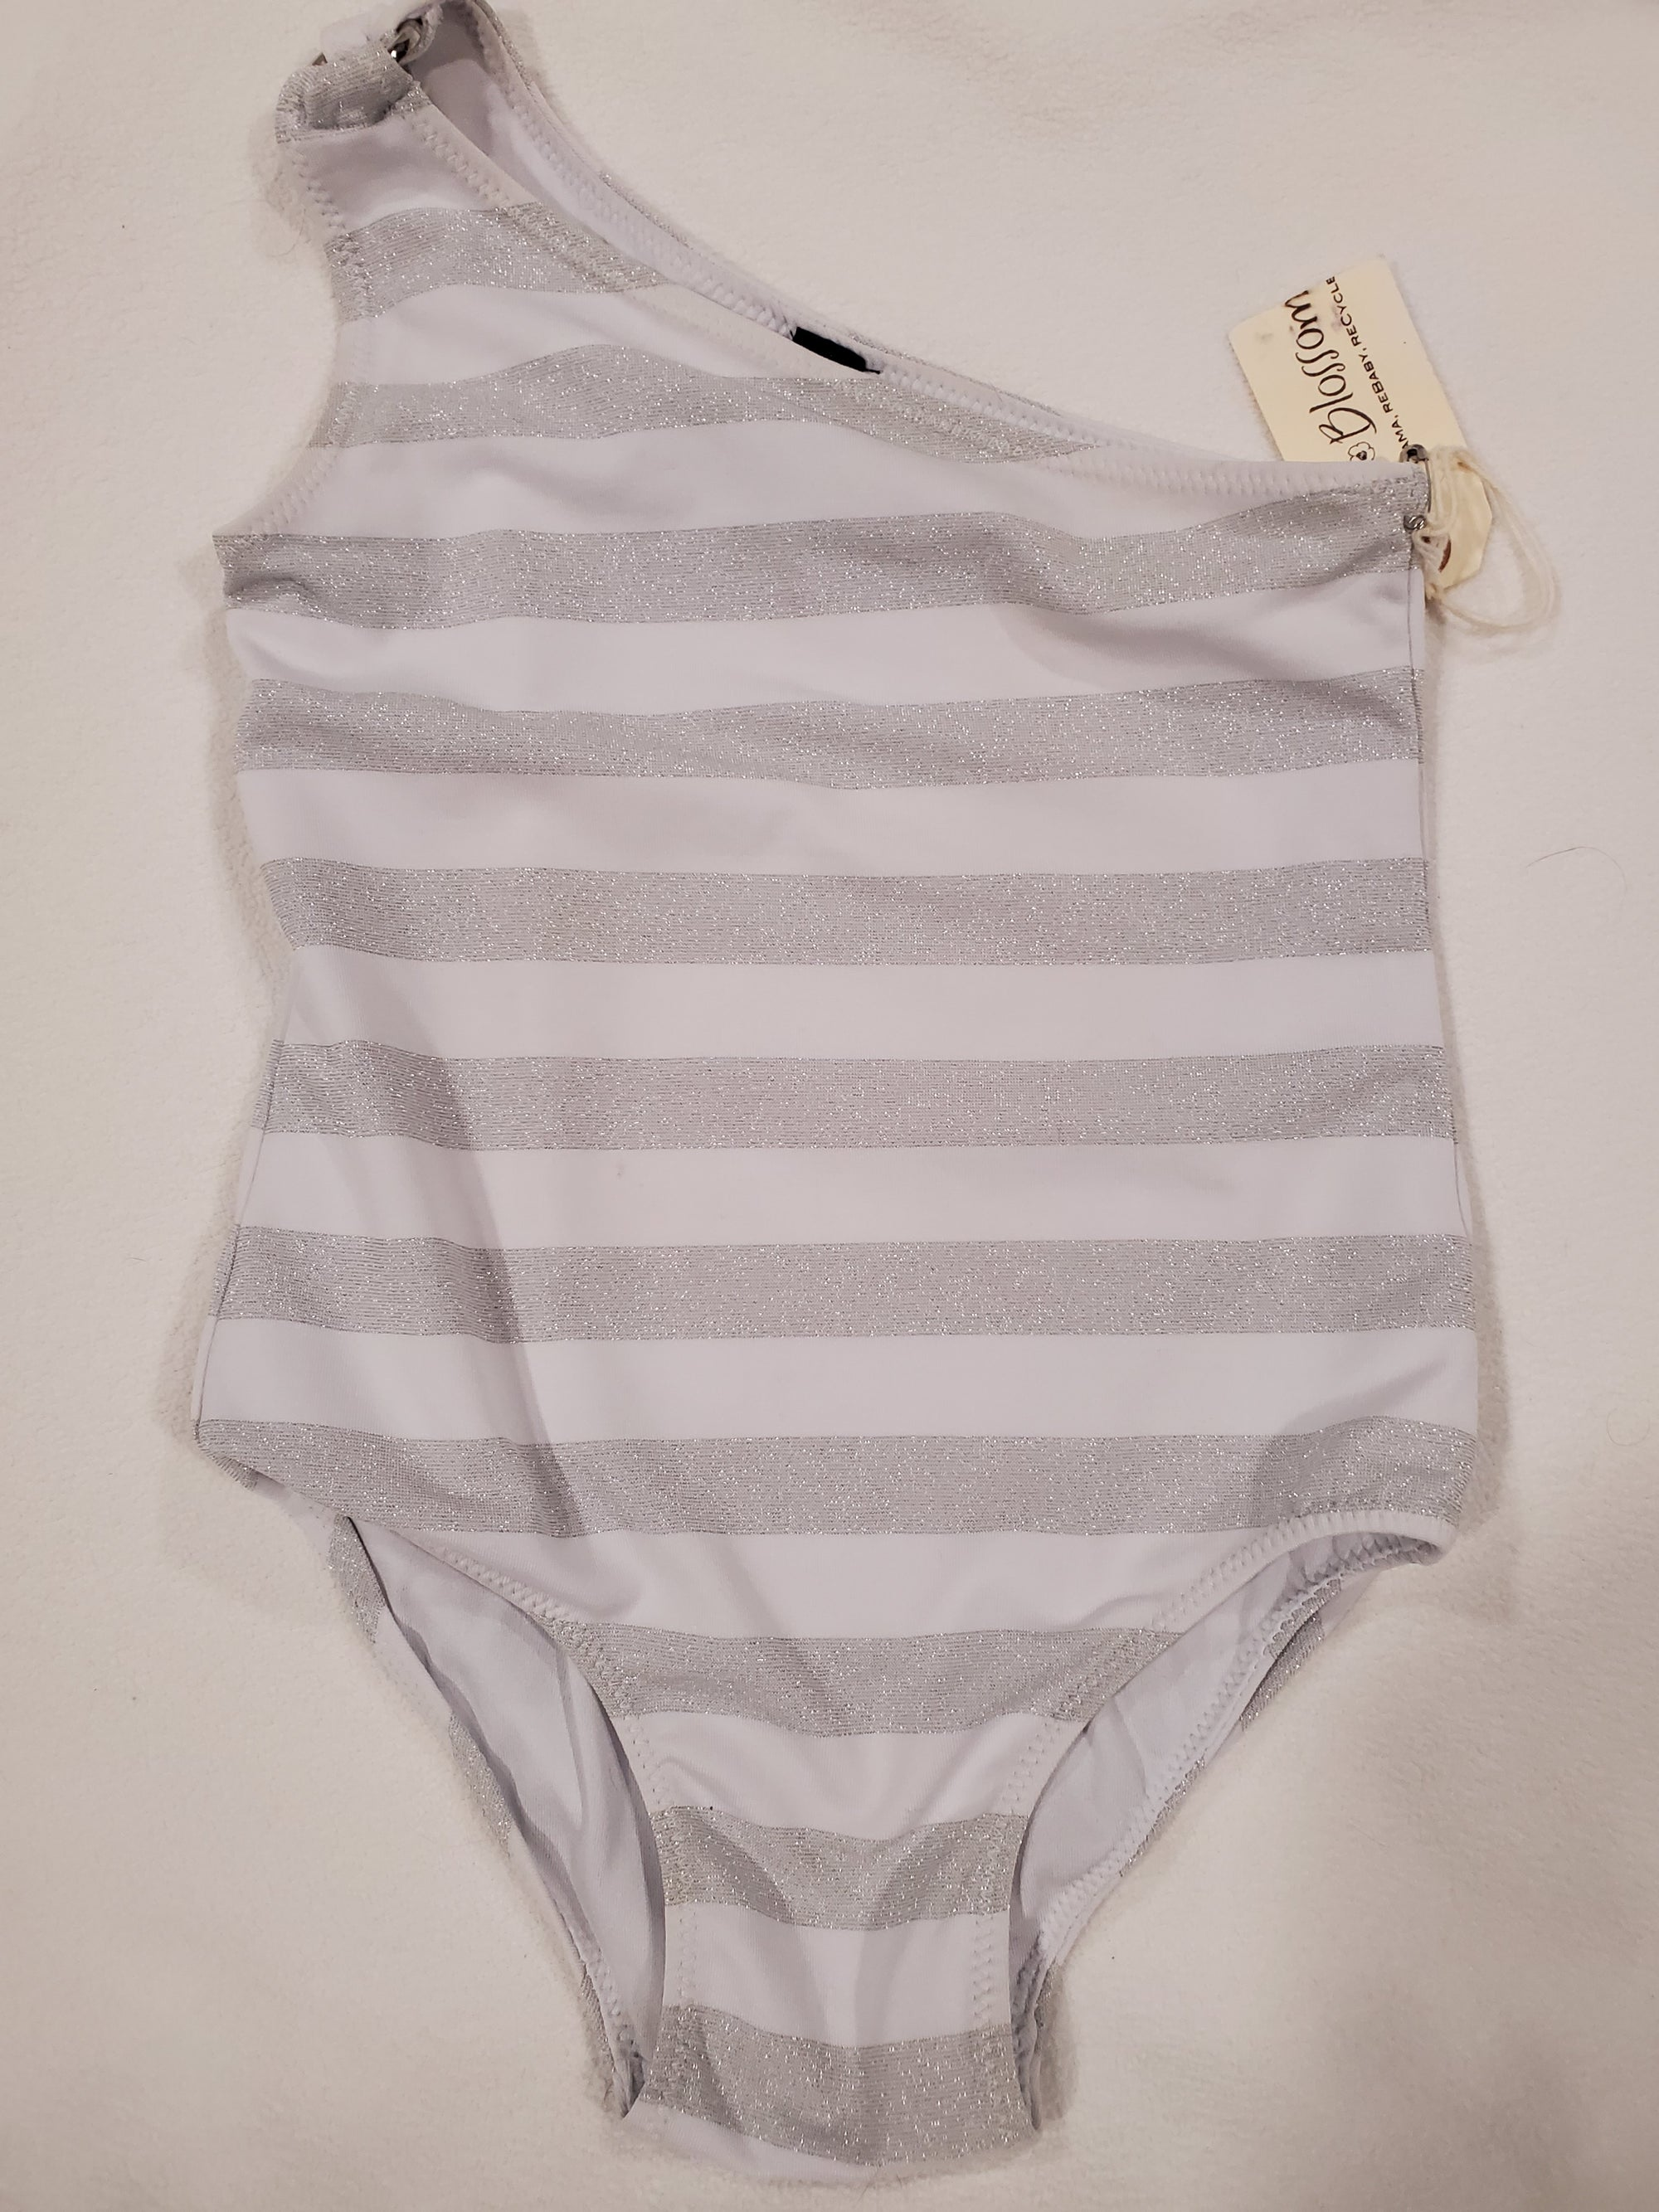 Resale 3T Baby Gap White Silver Sparkle Striped Swimsuit